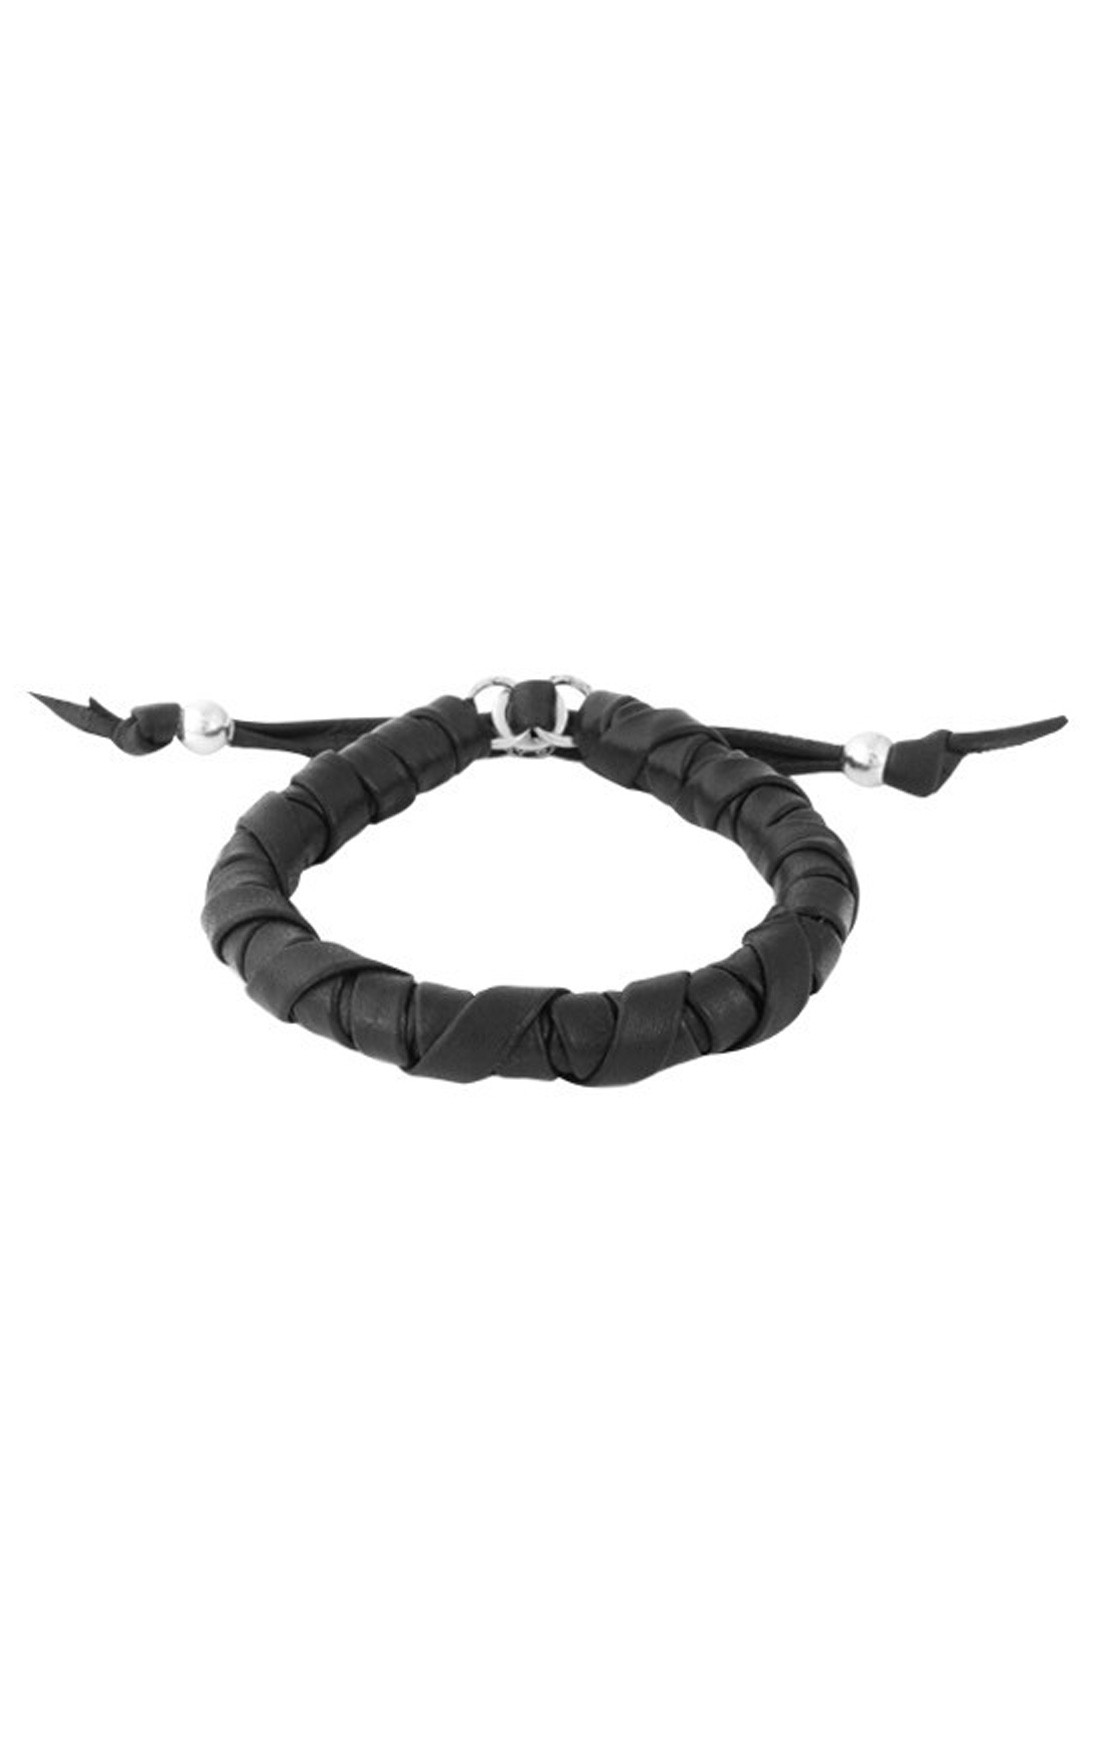 King Baby - Thick Natural Wrap Black Leather Bracelet (K42-8205)